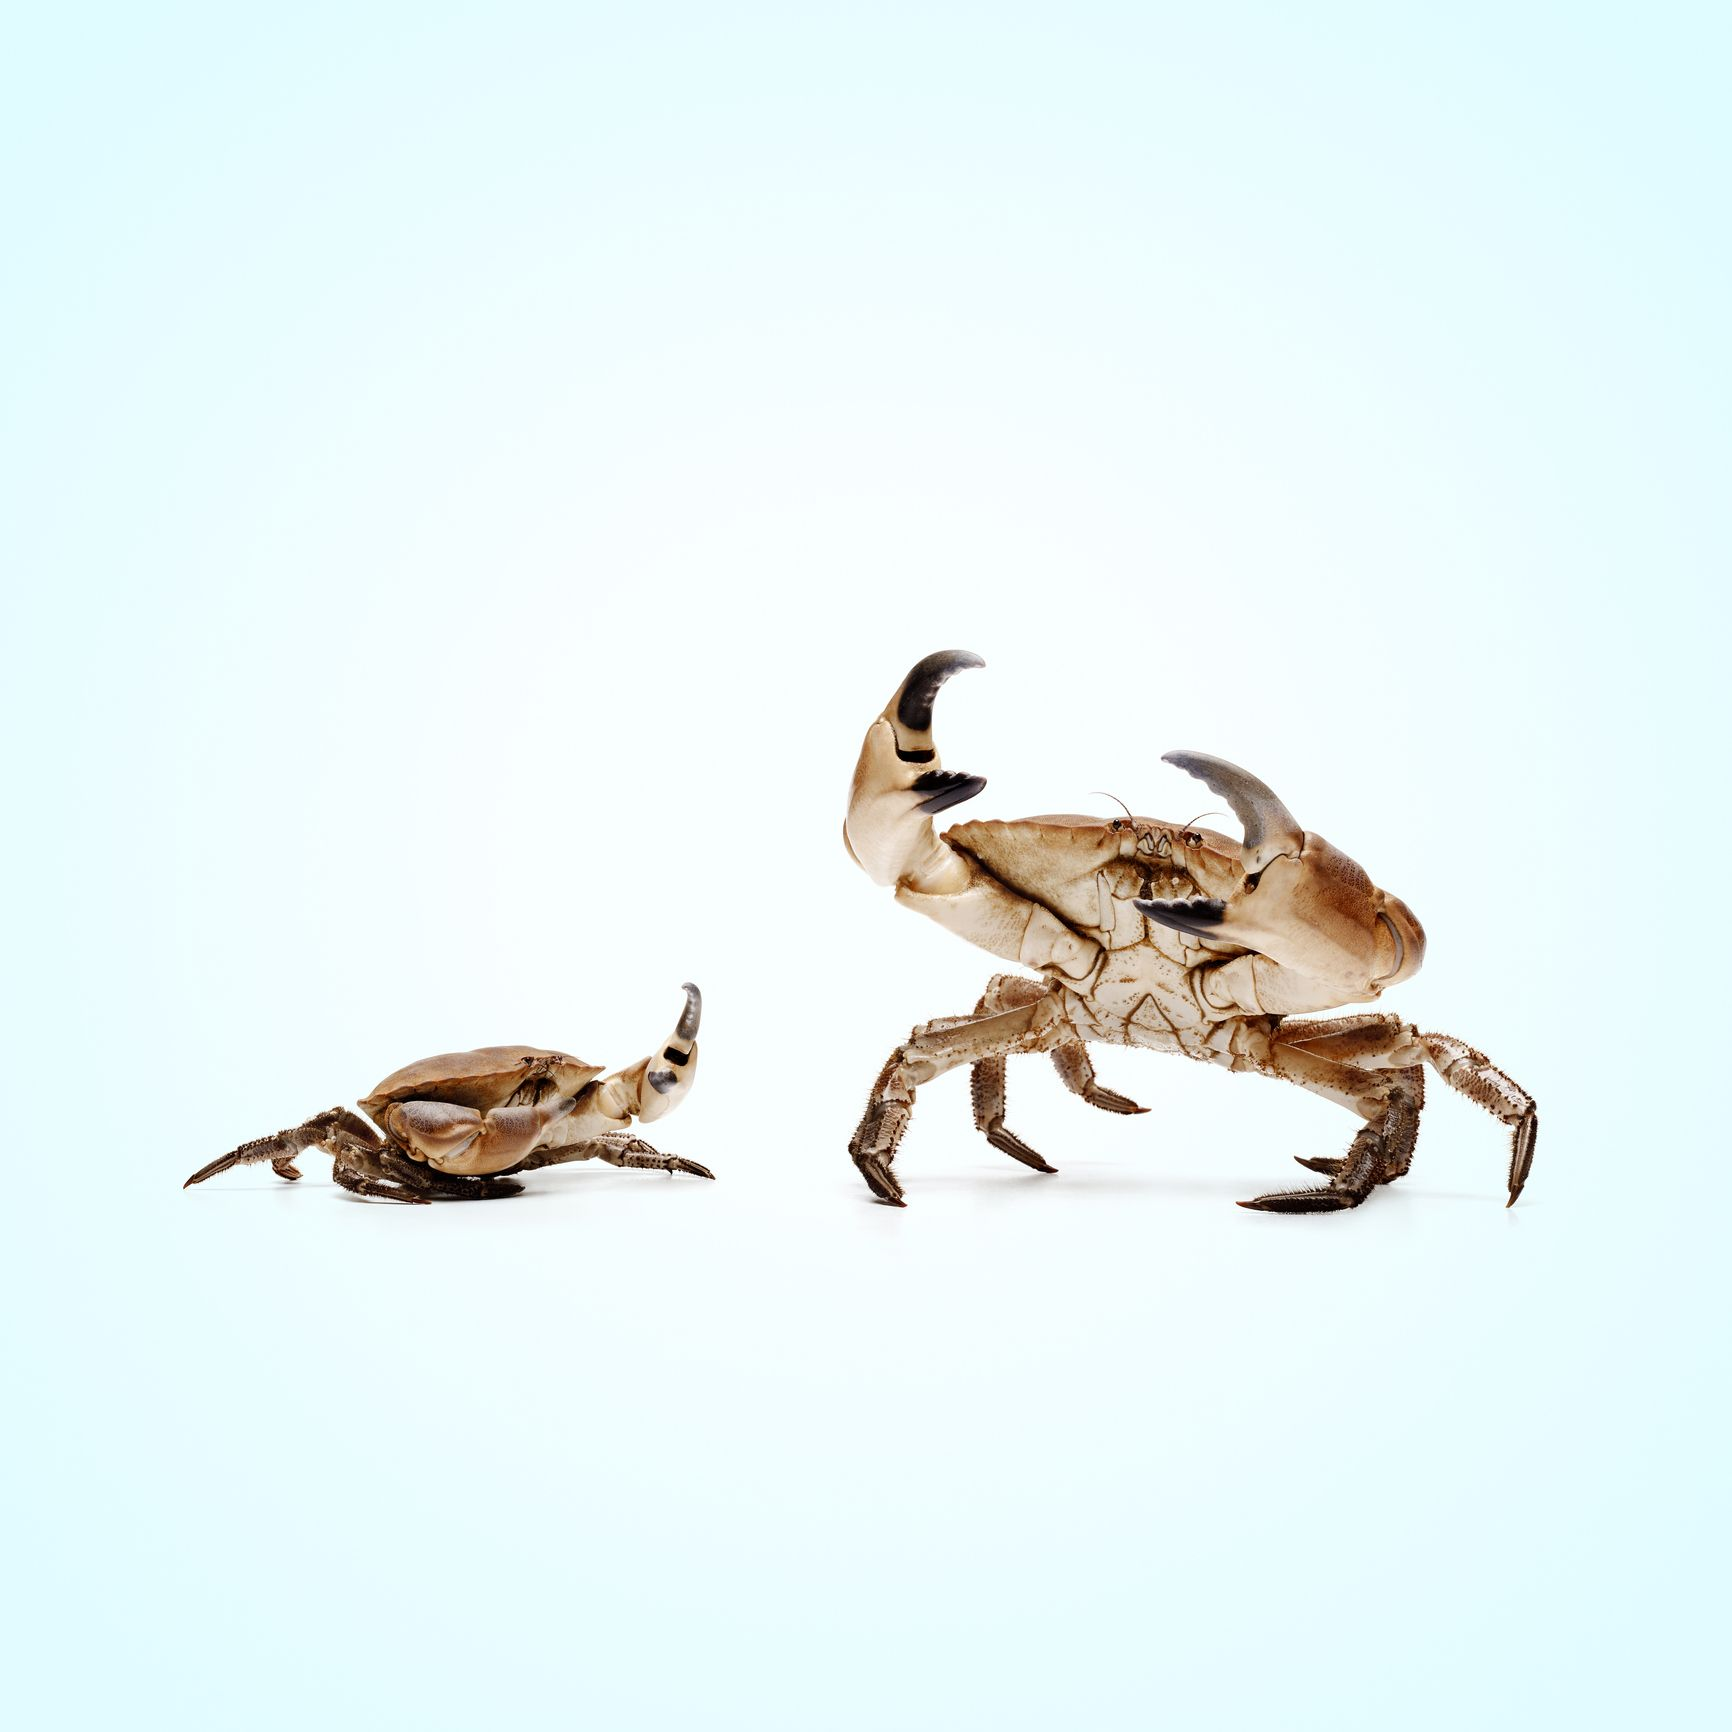 Animals Keep Evolving Into Crabs, Which Is Somewhat Disturbing